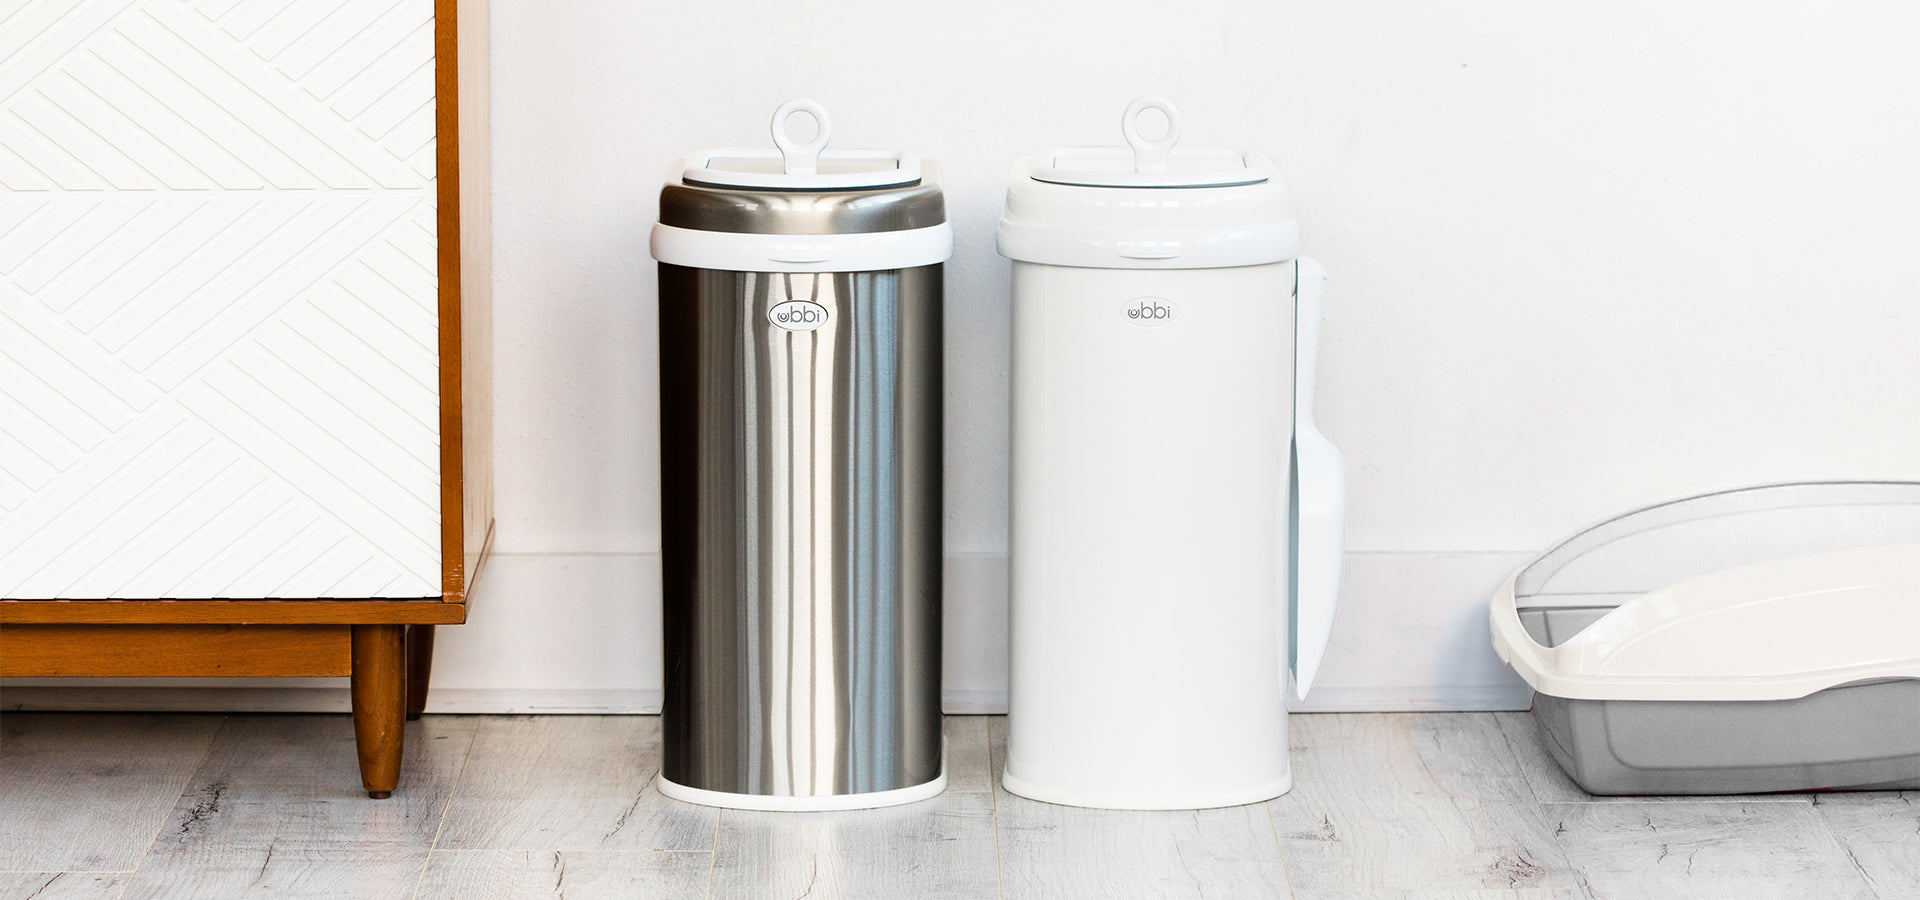 The chrome and white Ubbi pet waste pail side-by-side with a gray litterbox to the right